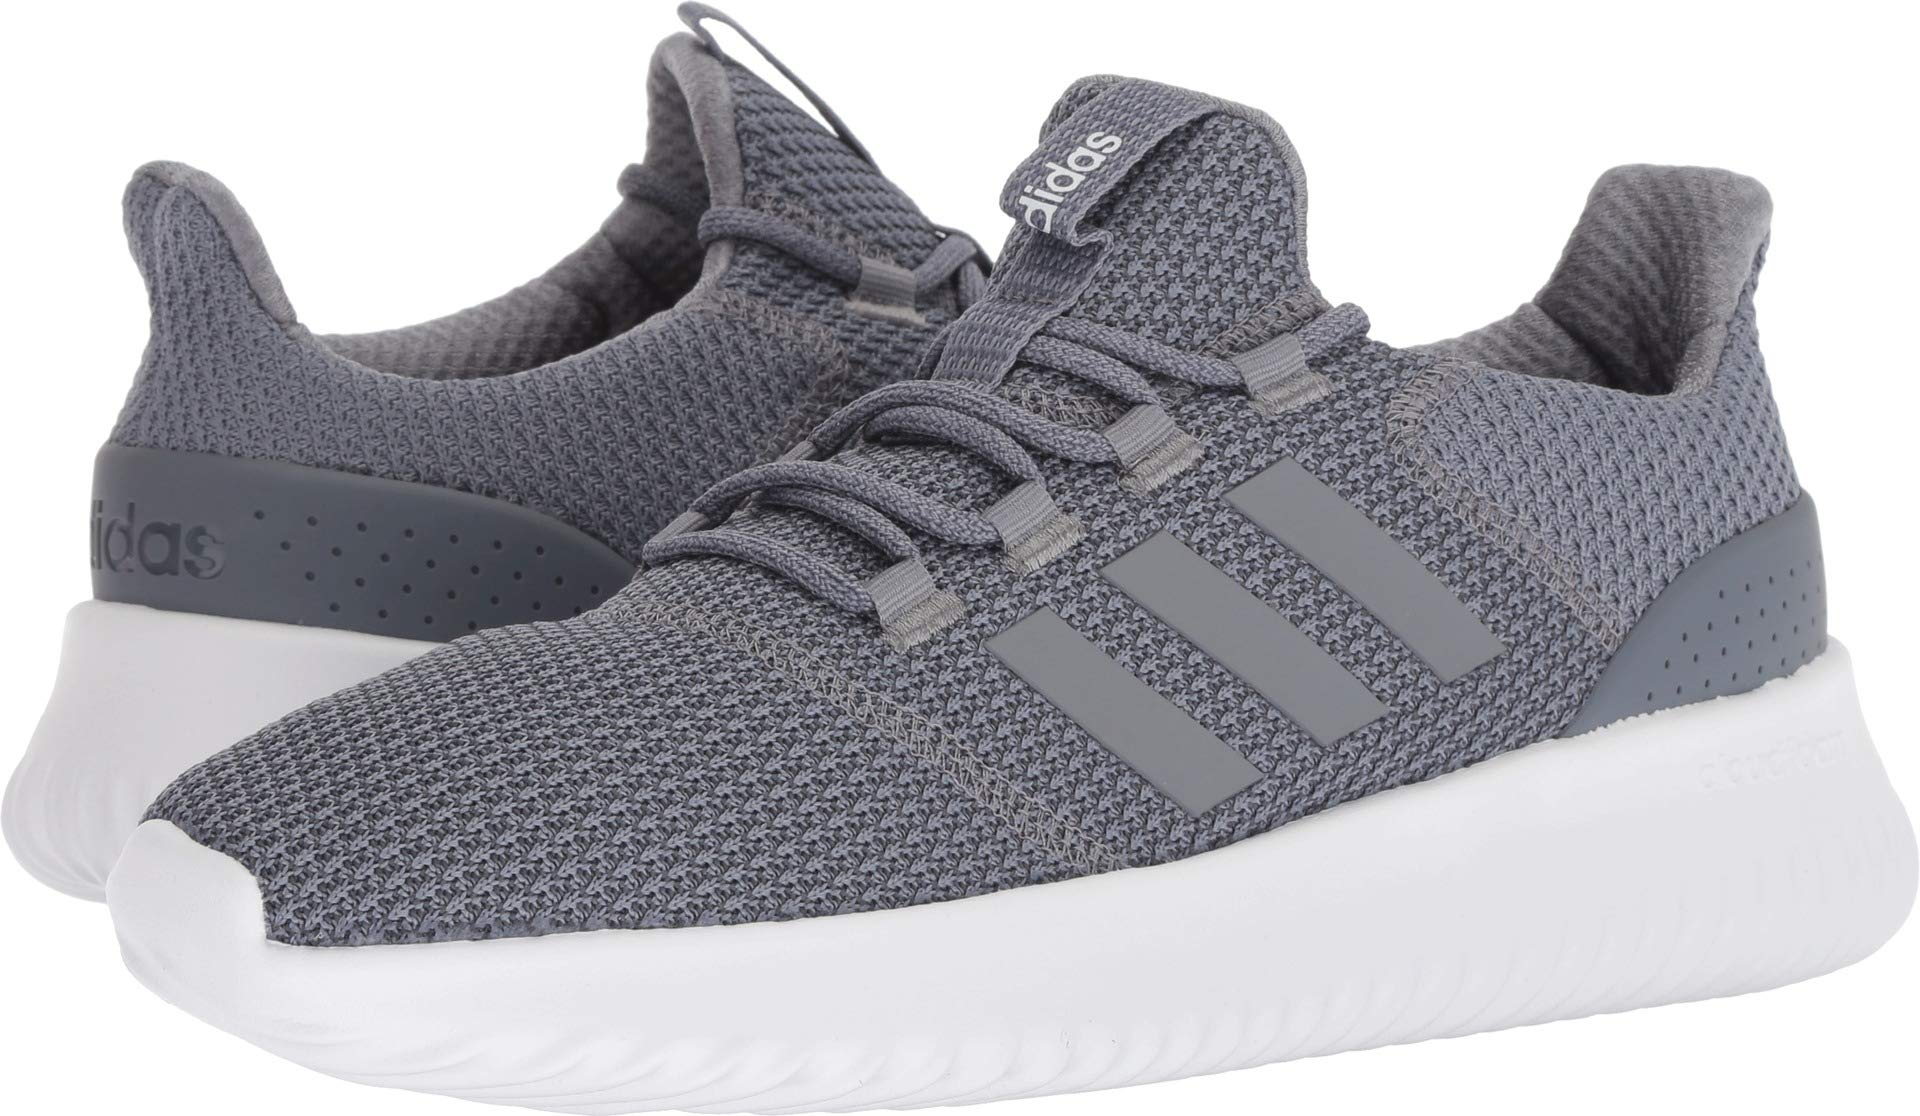 new style edc37 7a5c4 Galleon - Adidas Men s Cloudfoam Ultimate Running Shoe (Grey Grey Onix 12.5)